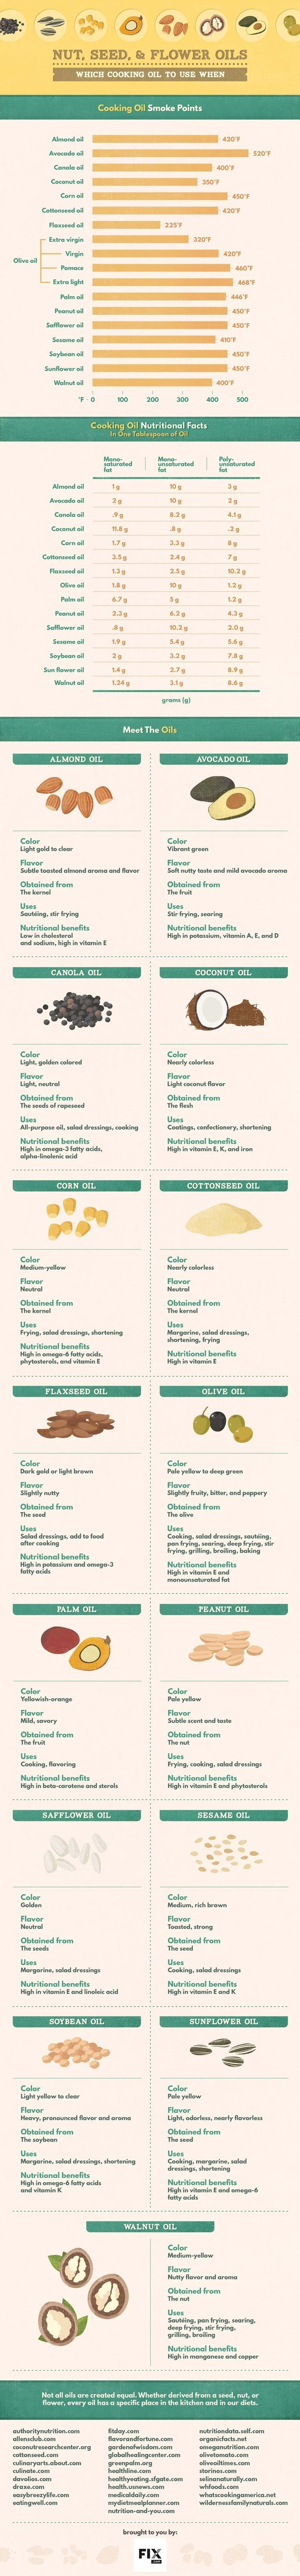 best-oils-for-eating